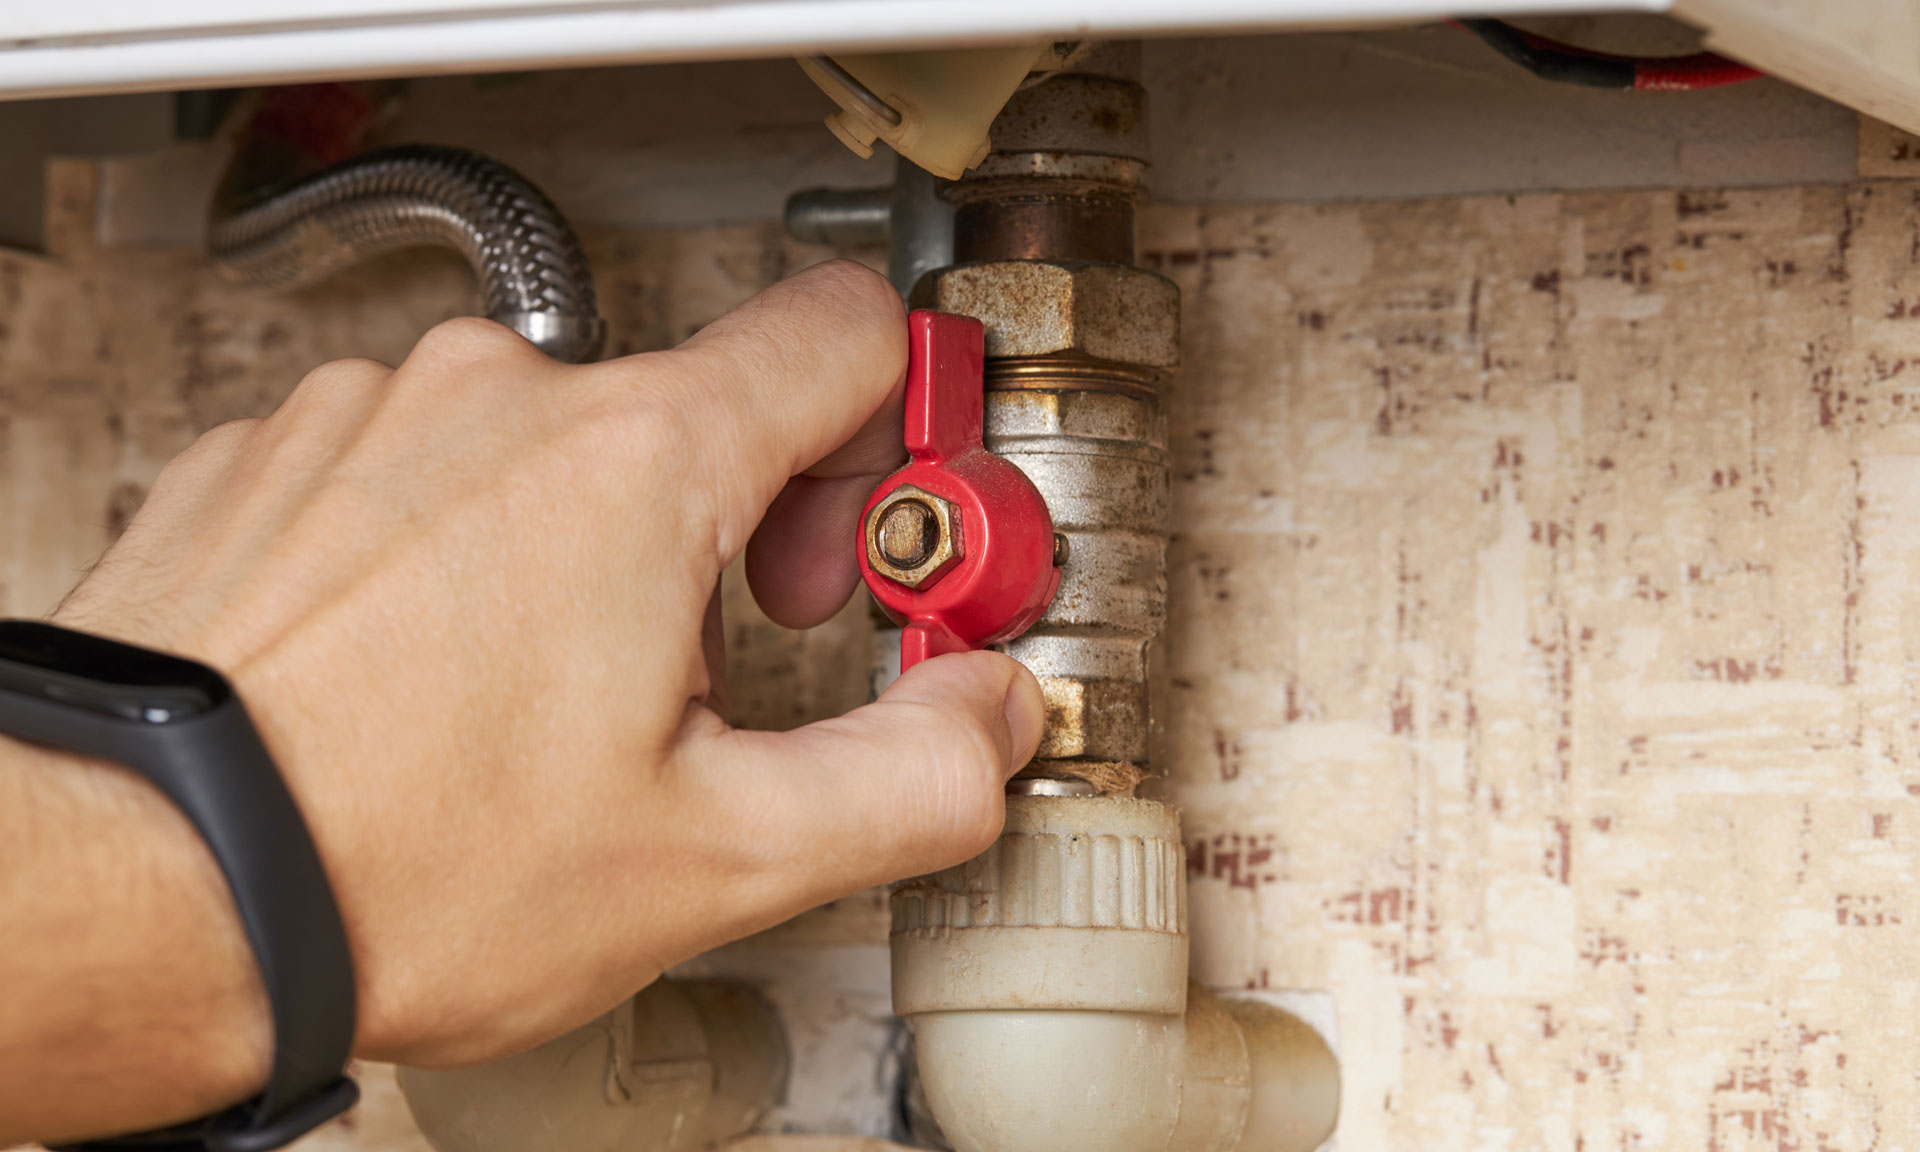 New boiler upgrade scheme: could you get £5,000 to install a heat pump? – Which? News